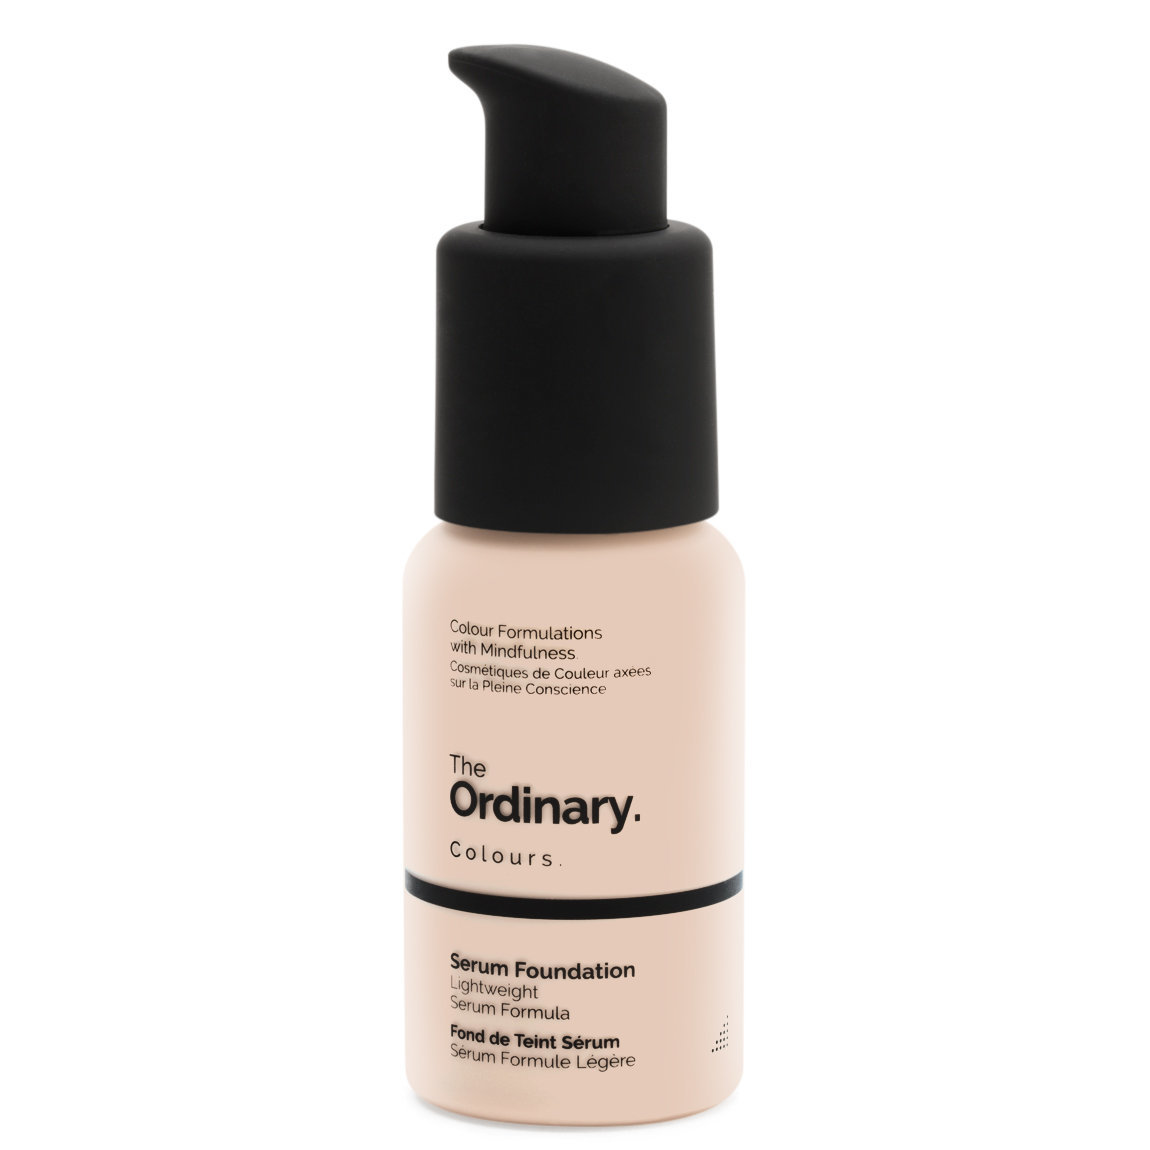 The Ordinary. Serum Foundation 1.0N